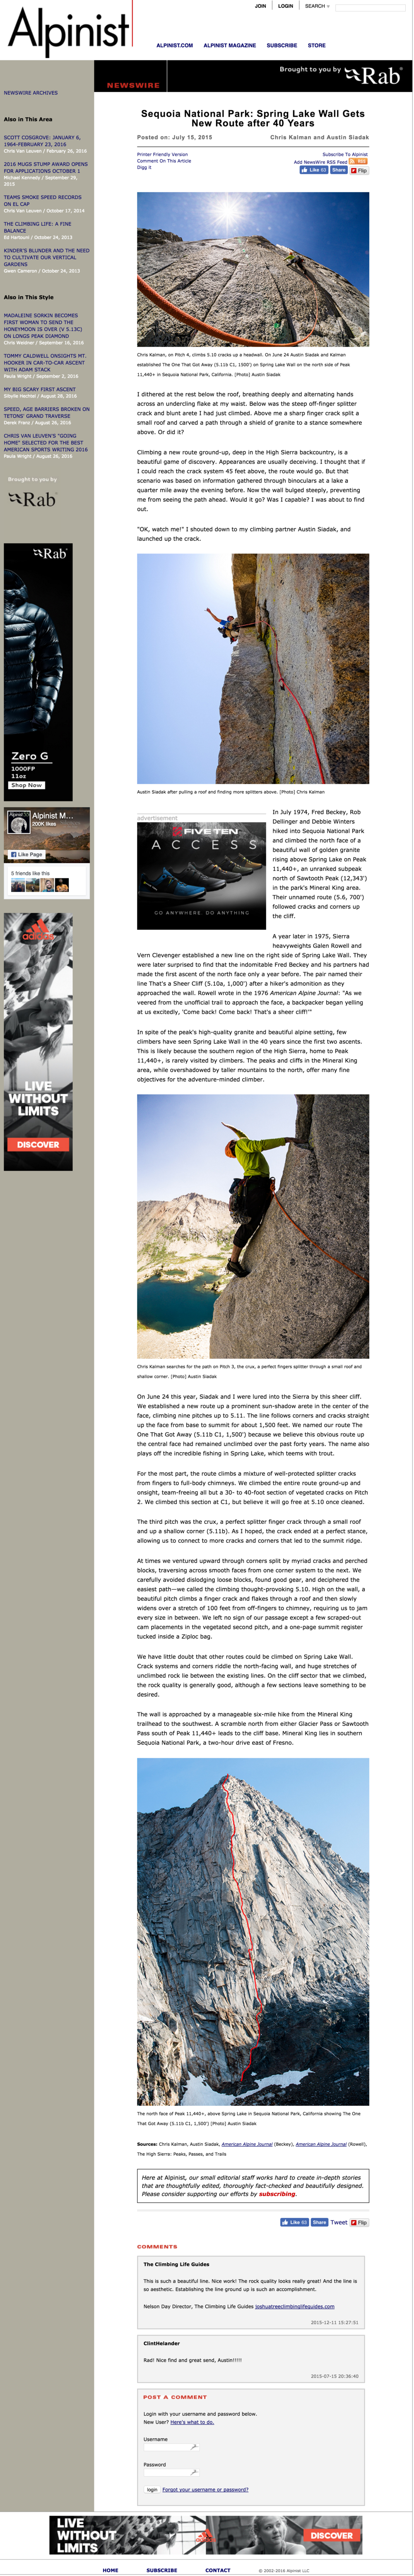 alpinist - Sequoia National Park  Spring Lake Wall Gets New Route after 40 Years   Alpinist.com.png